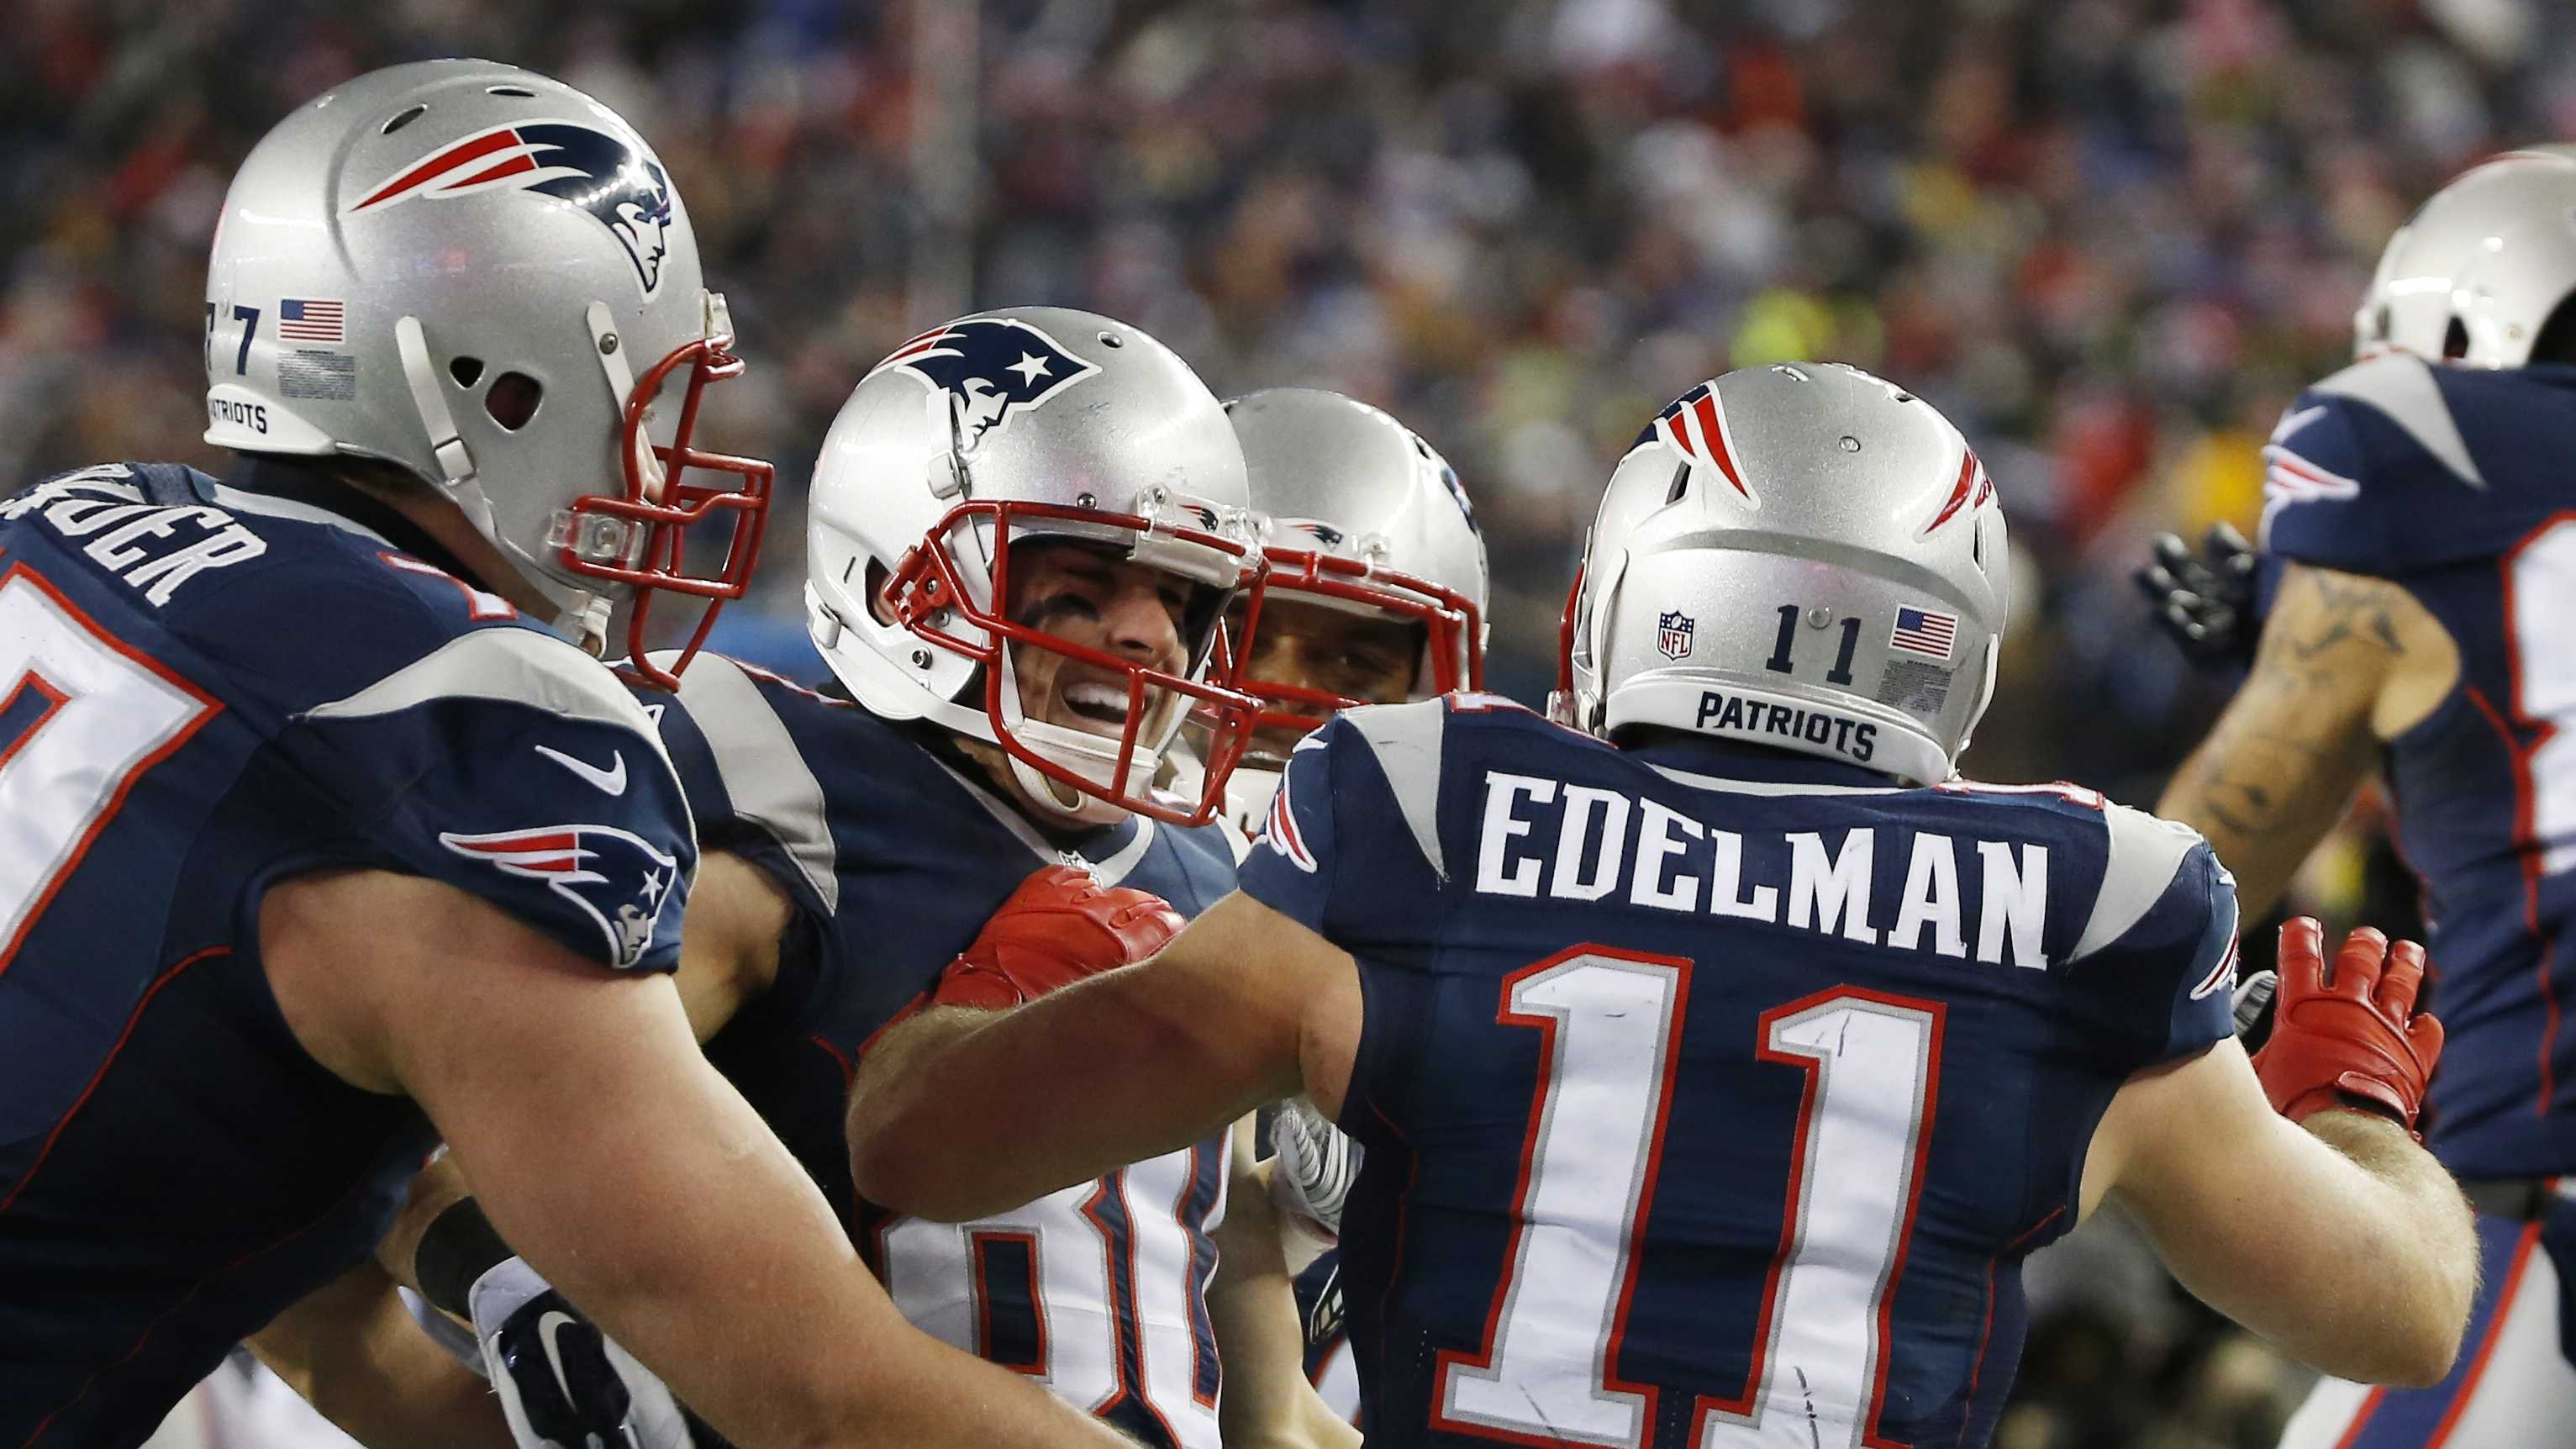 New England Patriots wide receiver Danny Amendola, center, celebrates his 51-yard touchdown pass from Julian Edelman (11) in the second half of an NFL divisional playoff football game against the Baltimore Ravens Saturday, Jan. 10, 2015, in Foxborough, Mass.